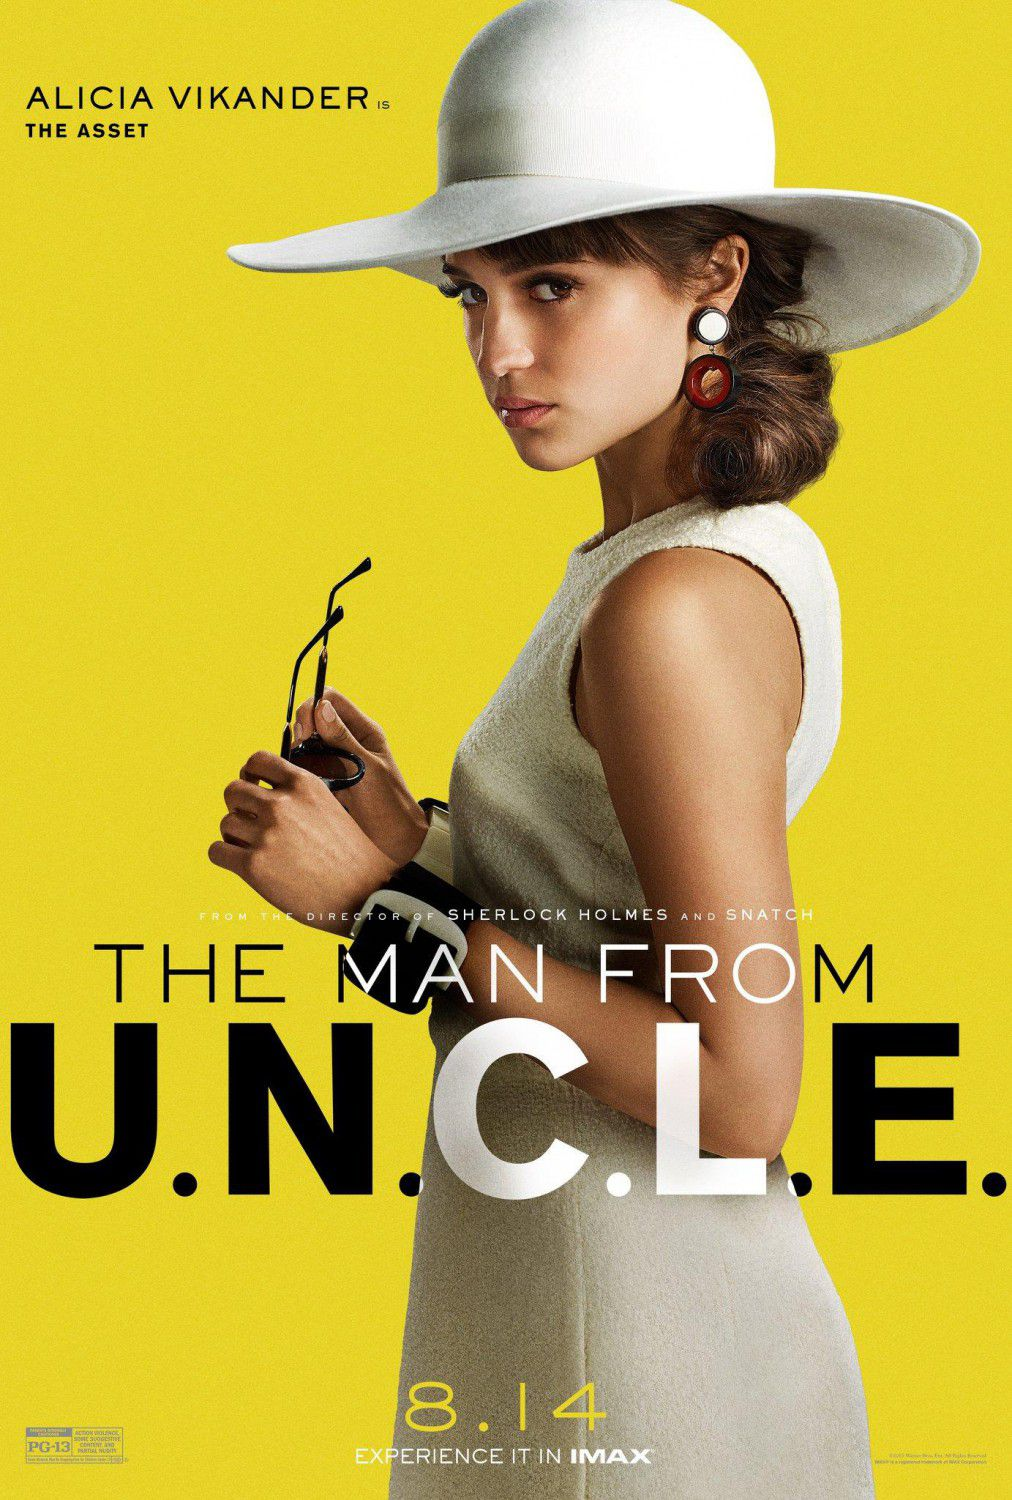 U.N.C.L.E. - Man from UNCLE -  Alicia Vikander